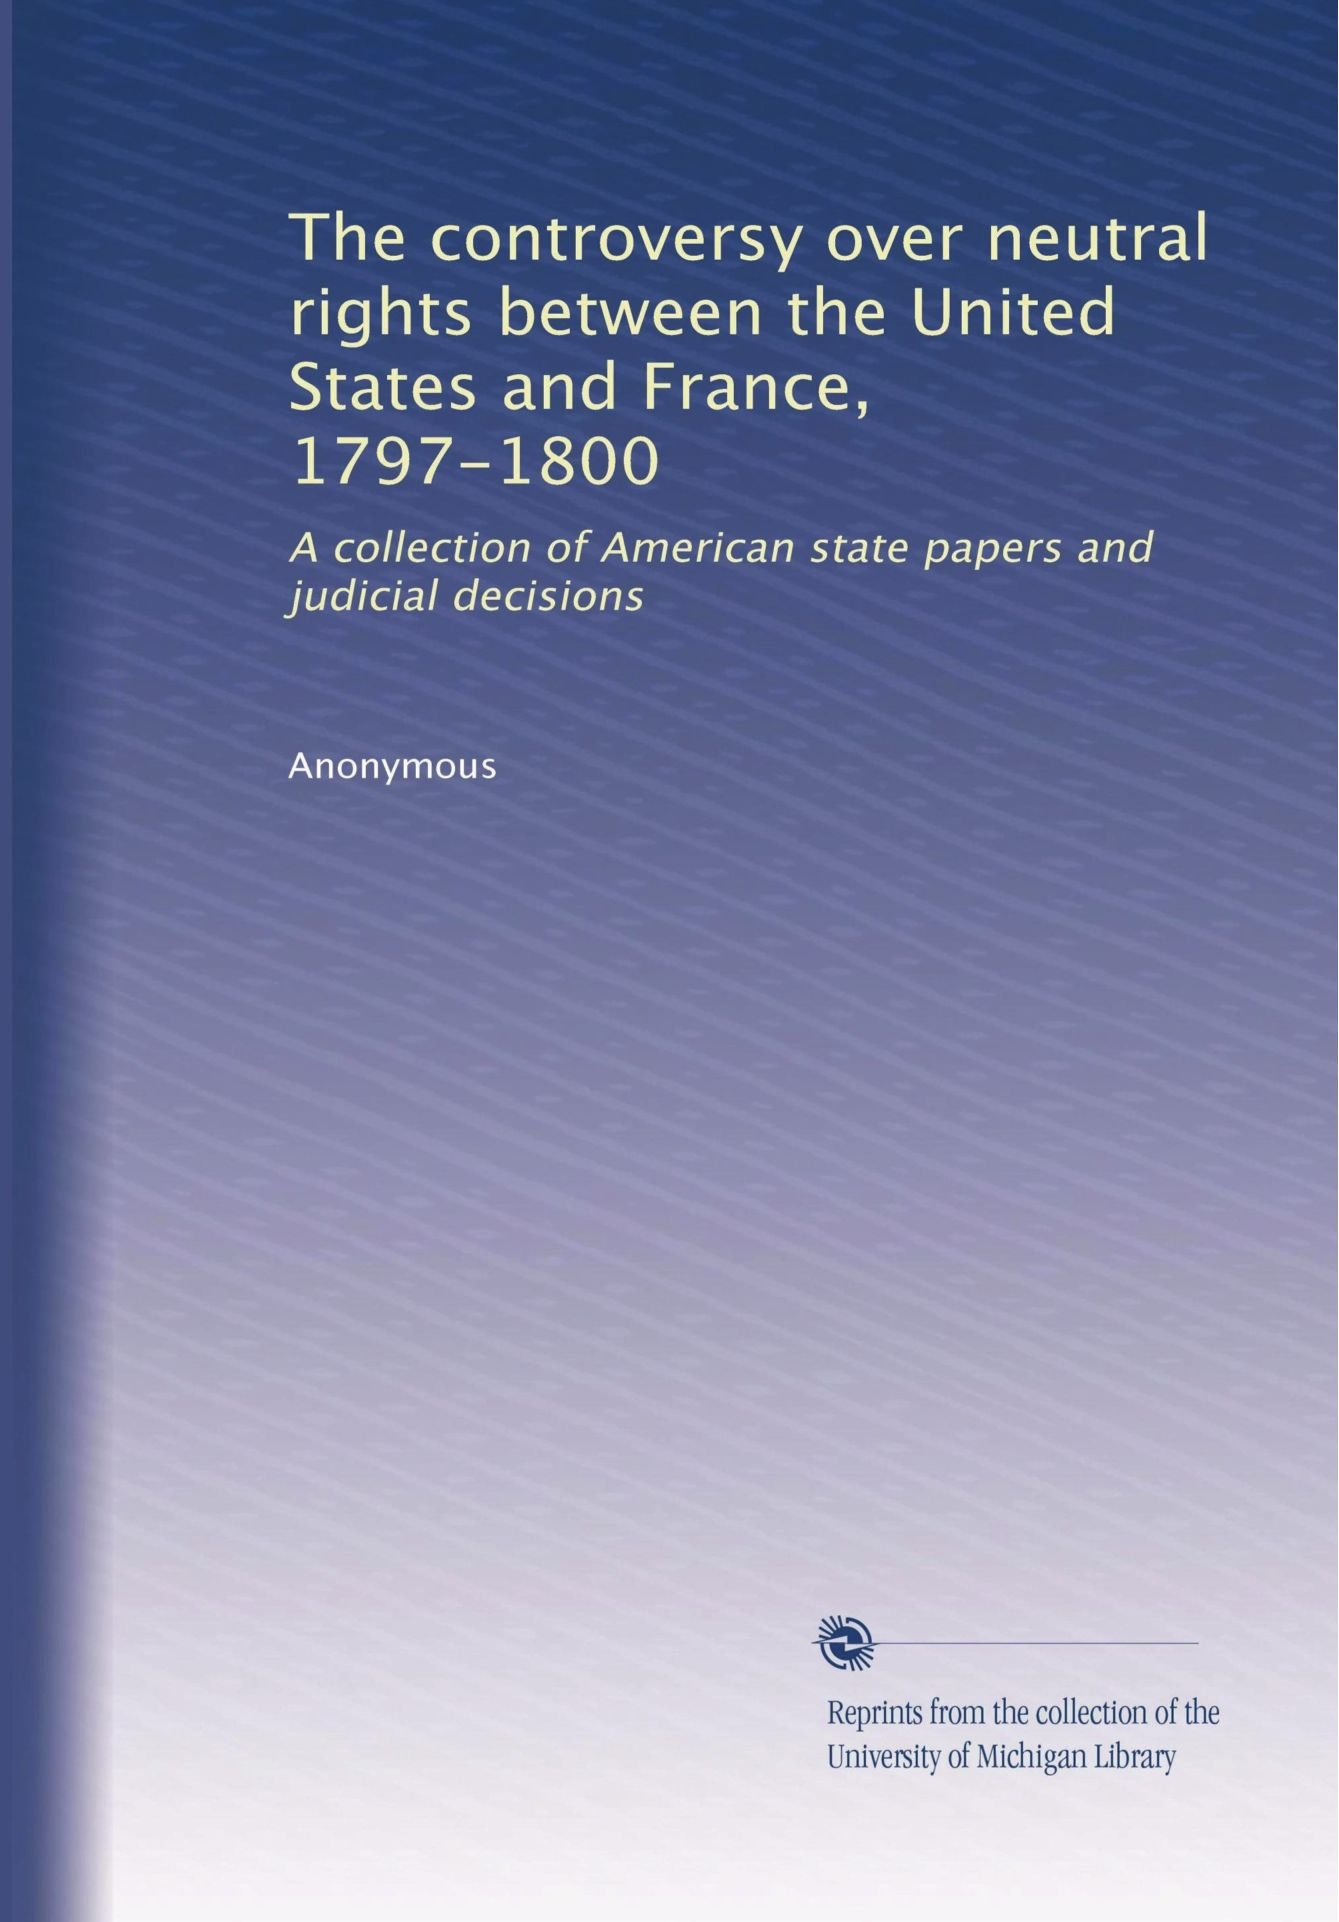 Download The controversy over neutral rights between the United States and France, 1797-1800: A collection of American state papers and judicial decisions PDF Text fb2 ebook